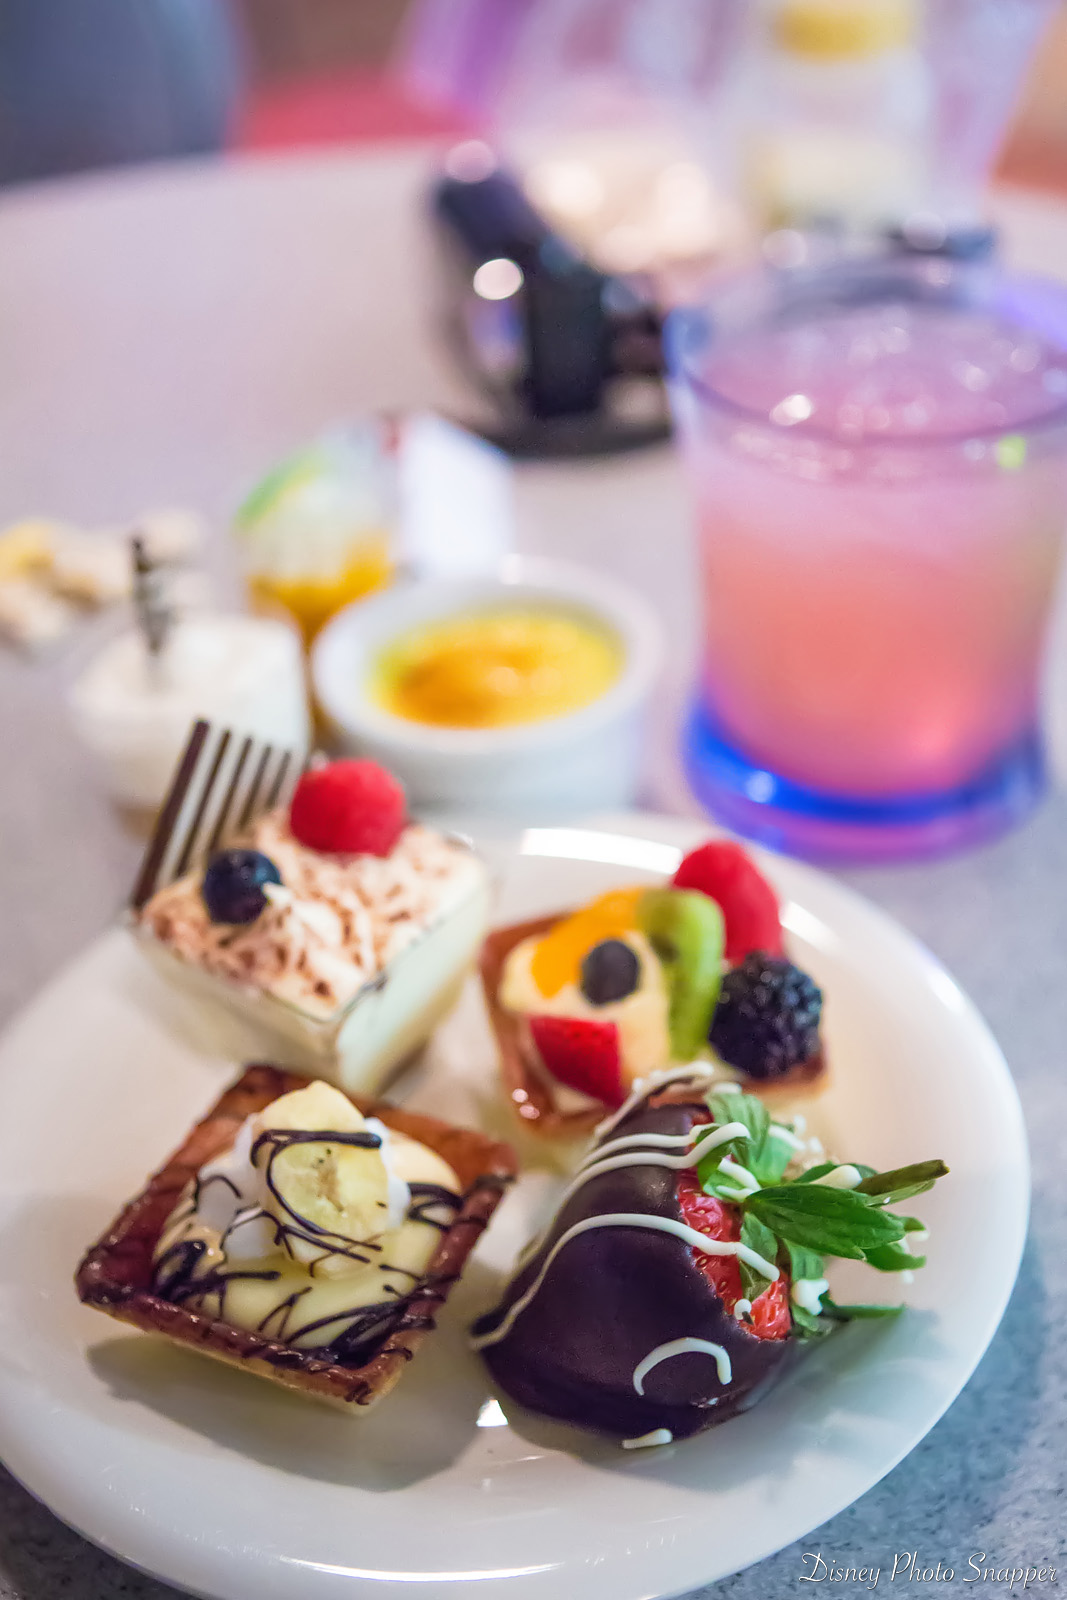 Would you eat all this? - Photo by Disney Photo Snapper